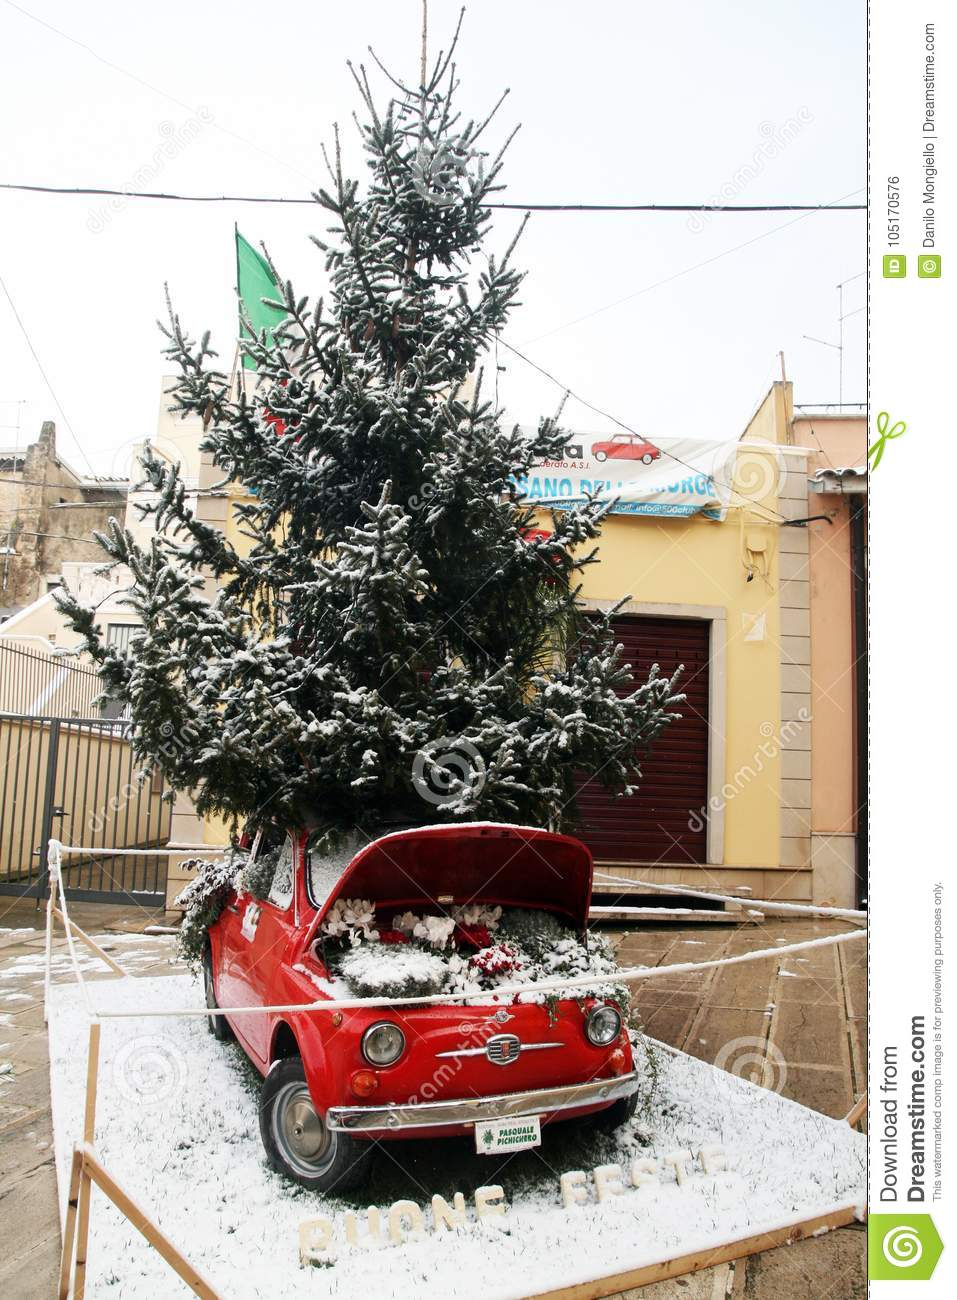 A Fiat 500 Car Used Like Christmas Tree At Cassano Delle Murge In Italy